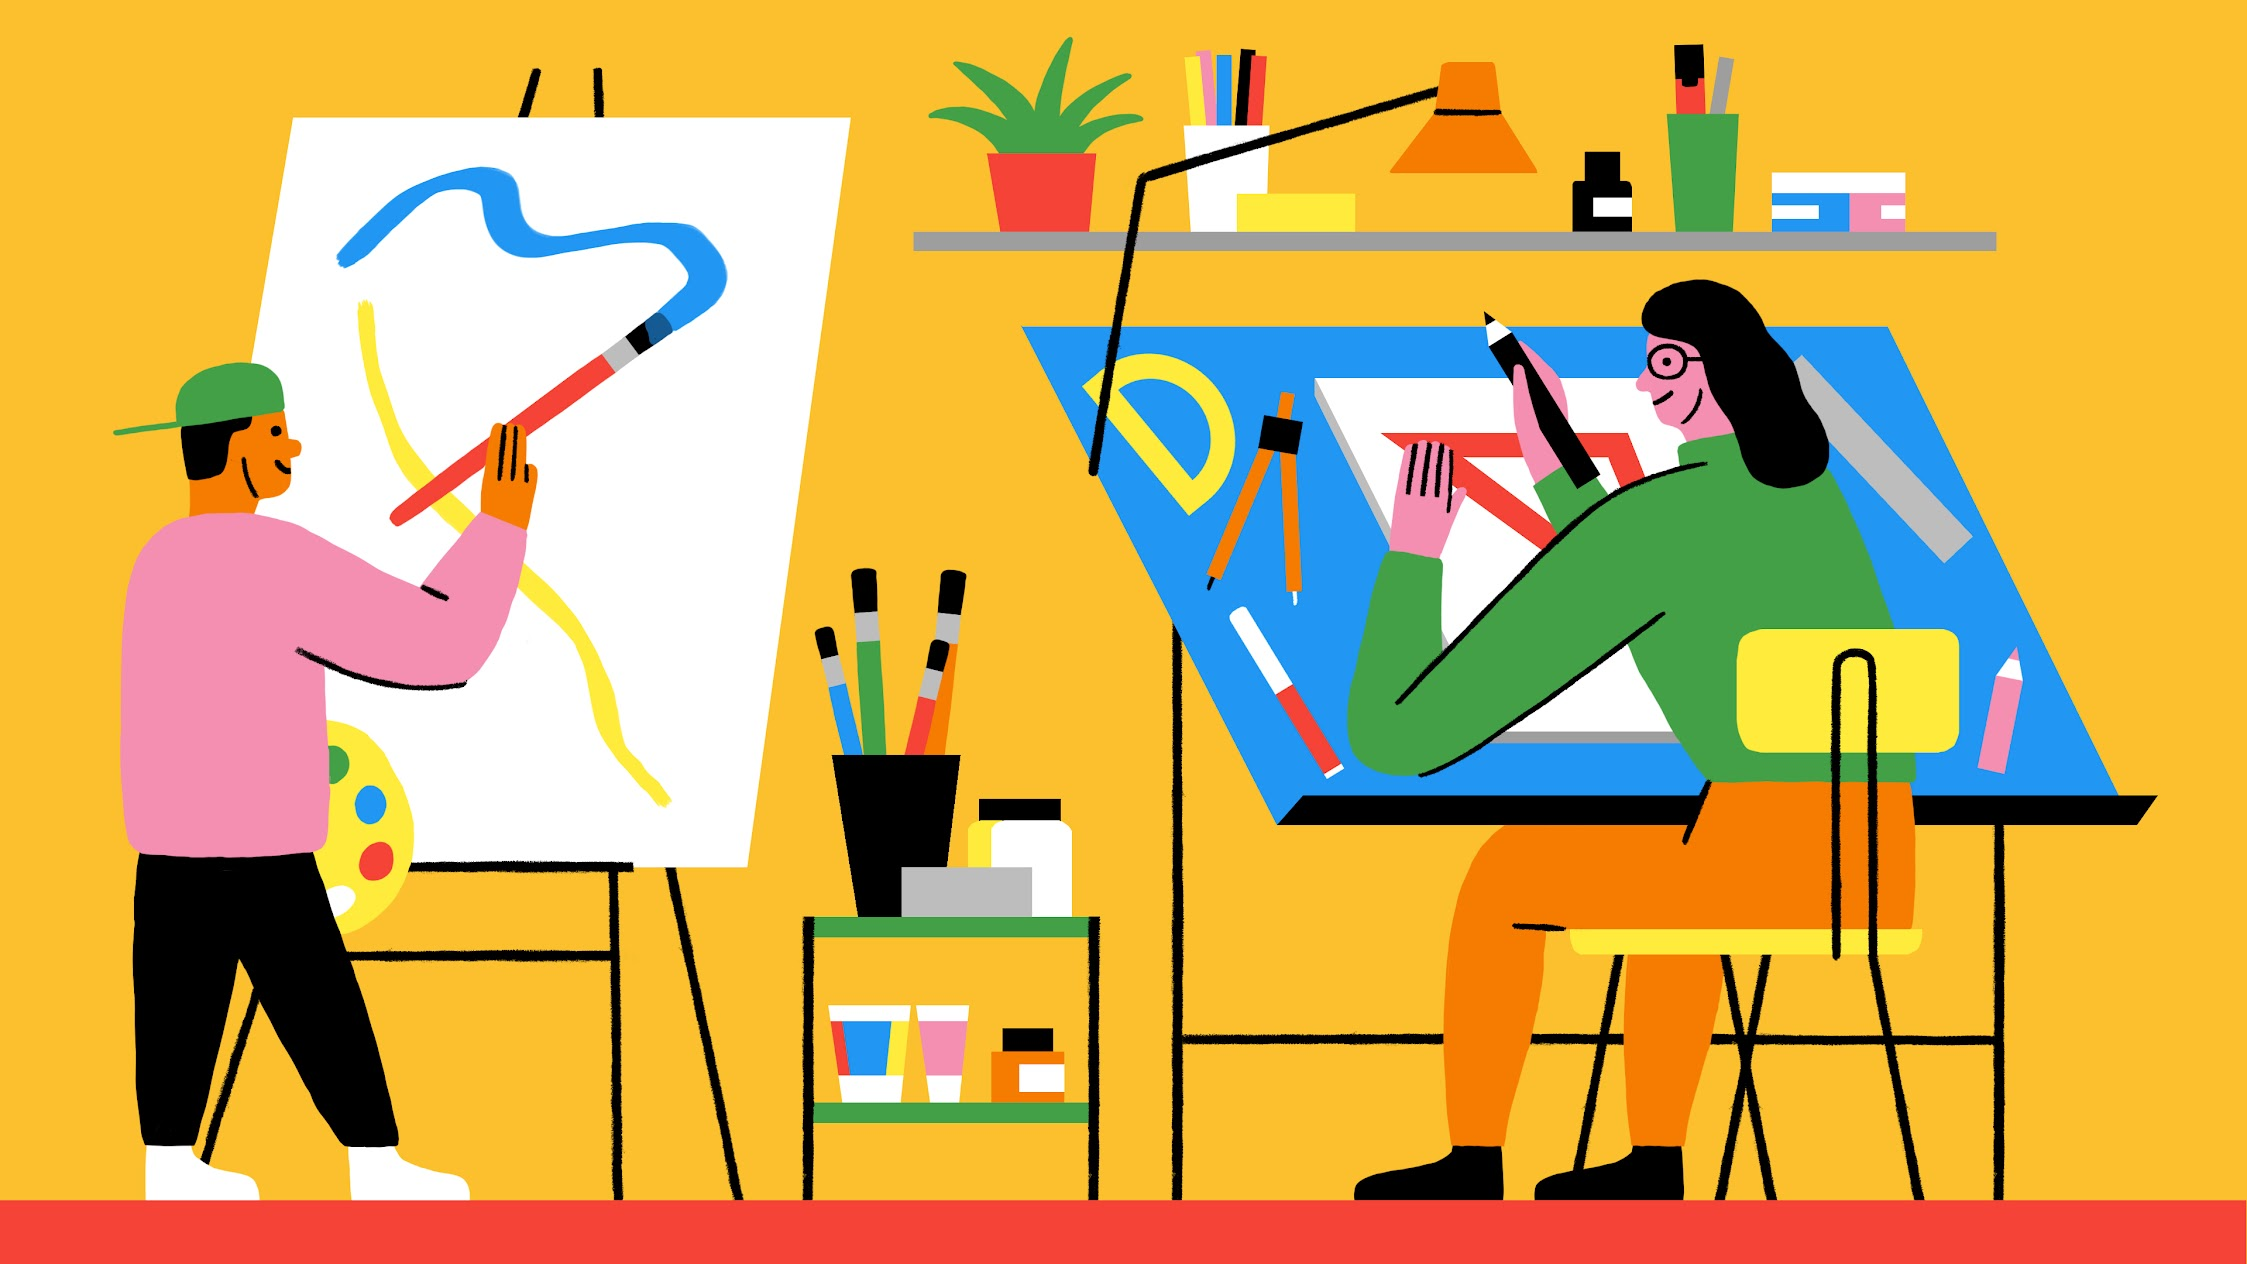 Drawing & coloring apps for artists of all stripes